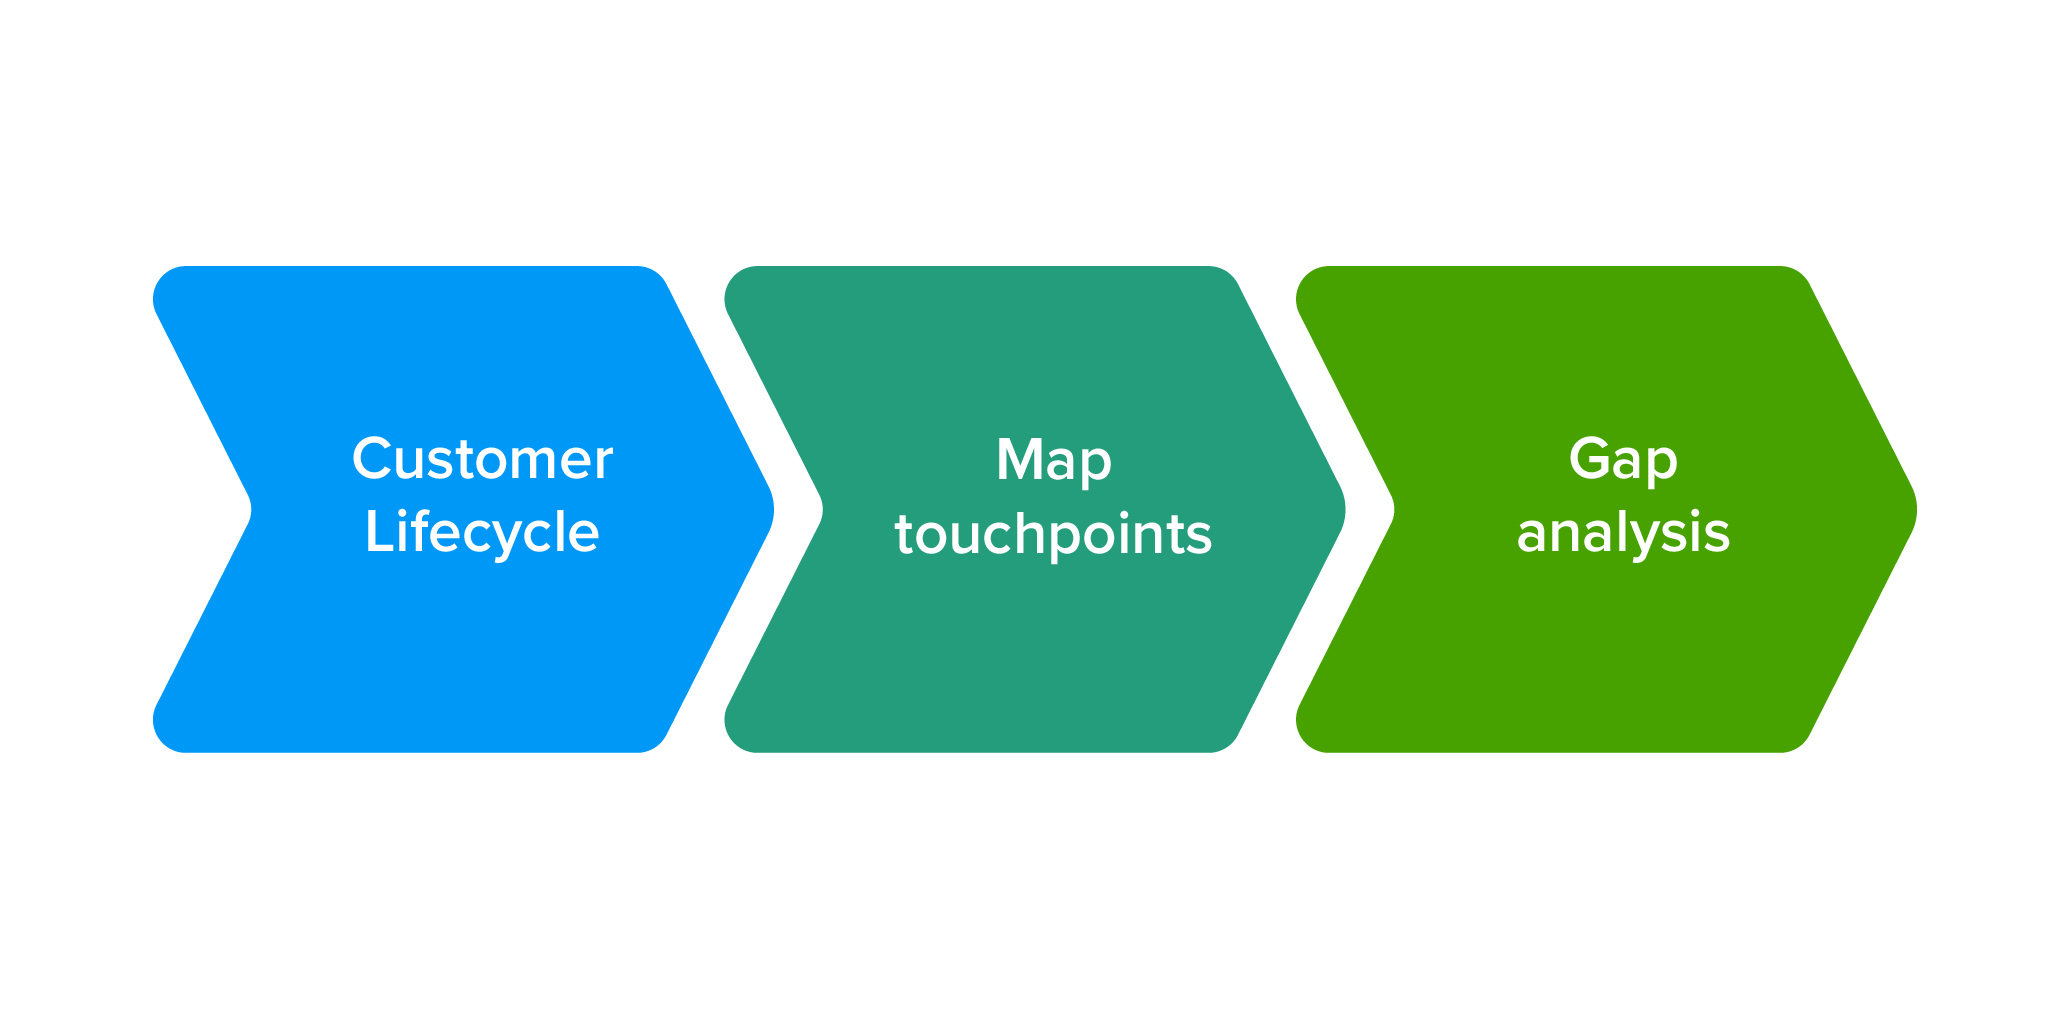 Customer journey lifecycle stages